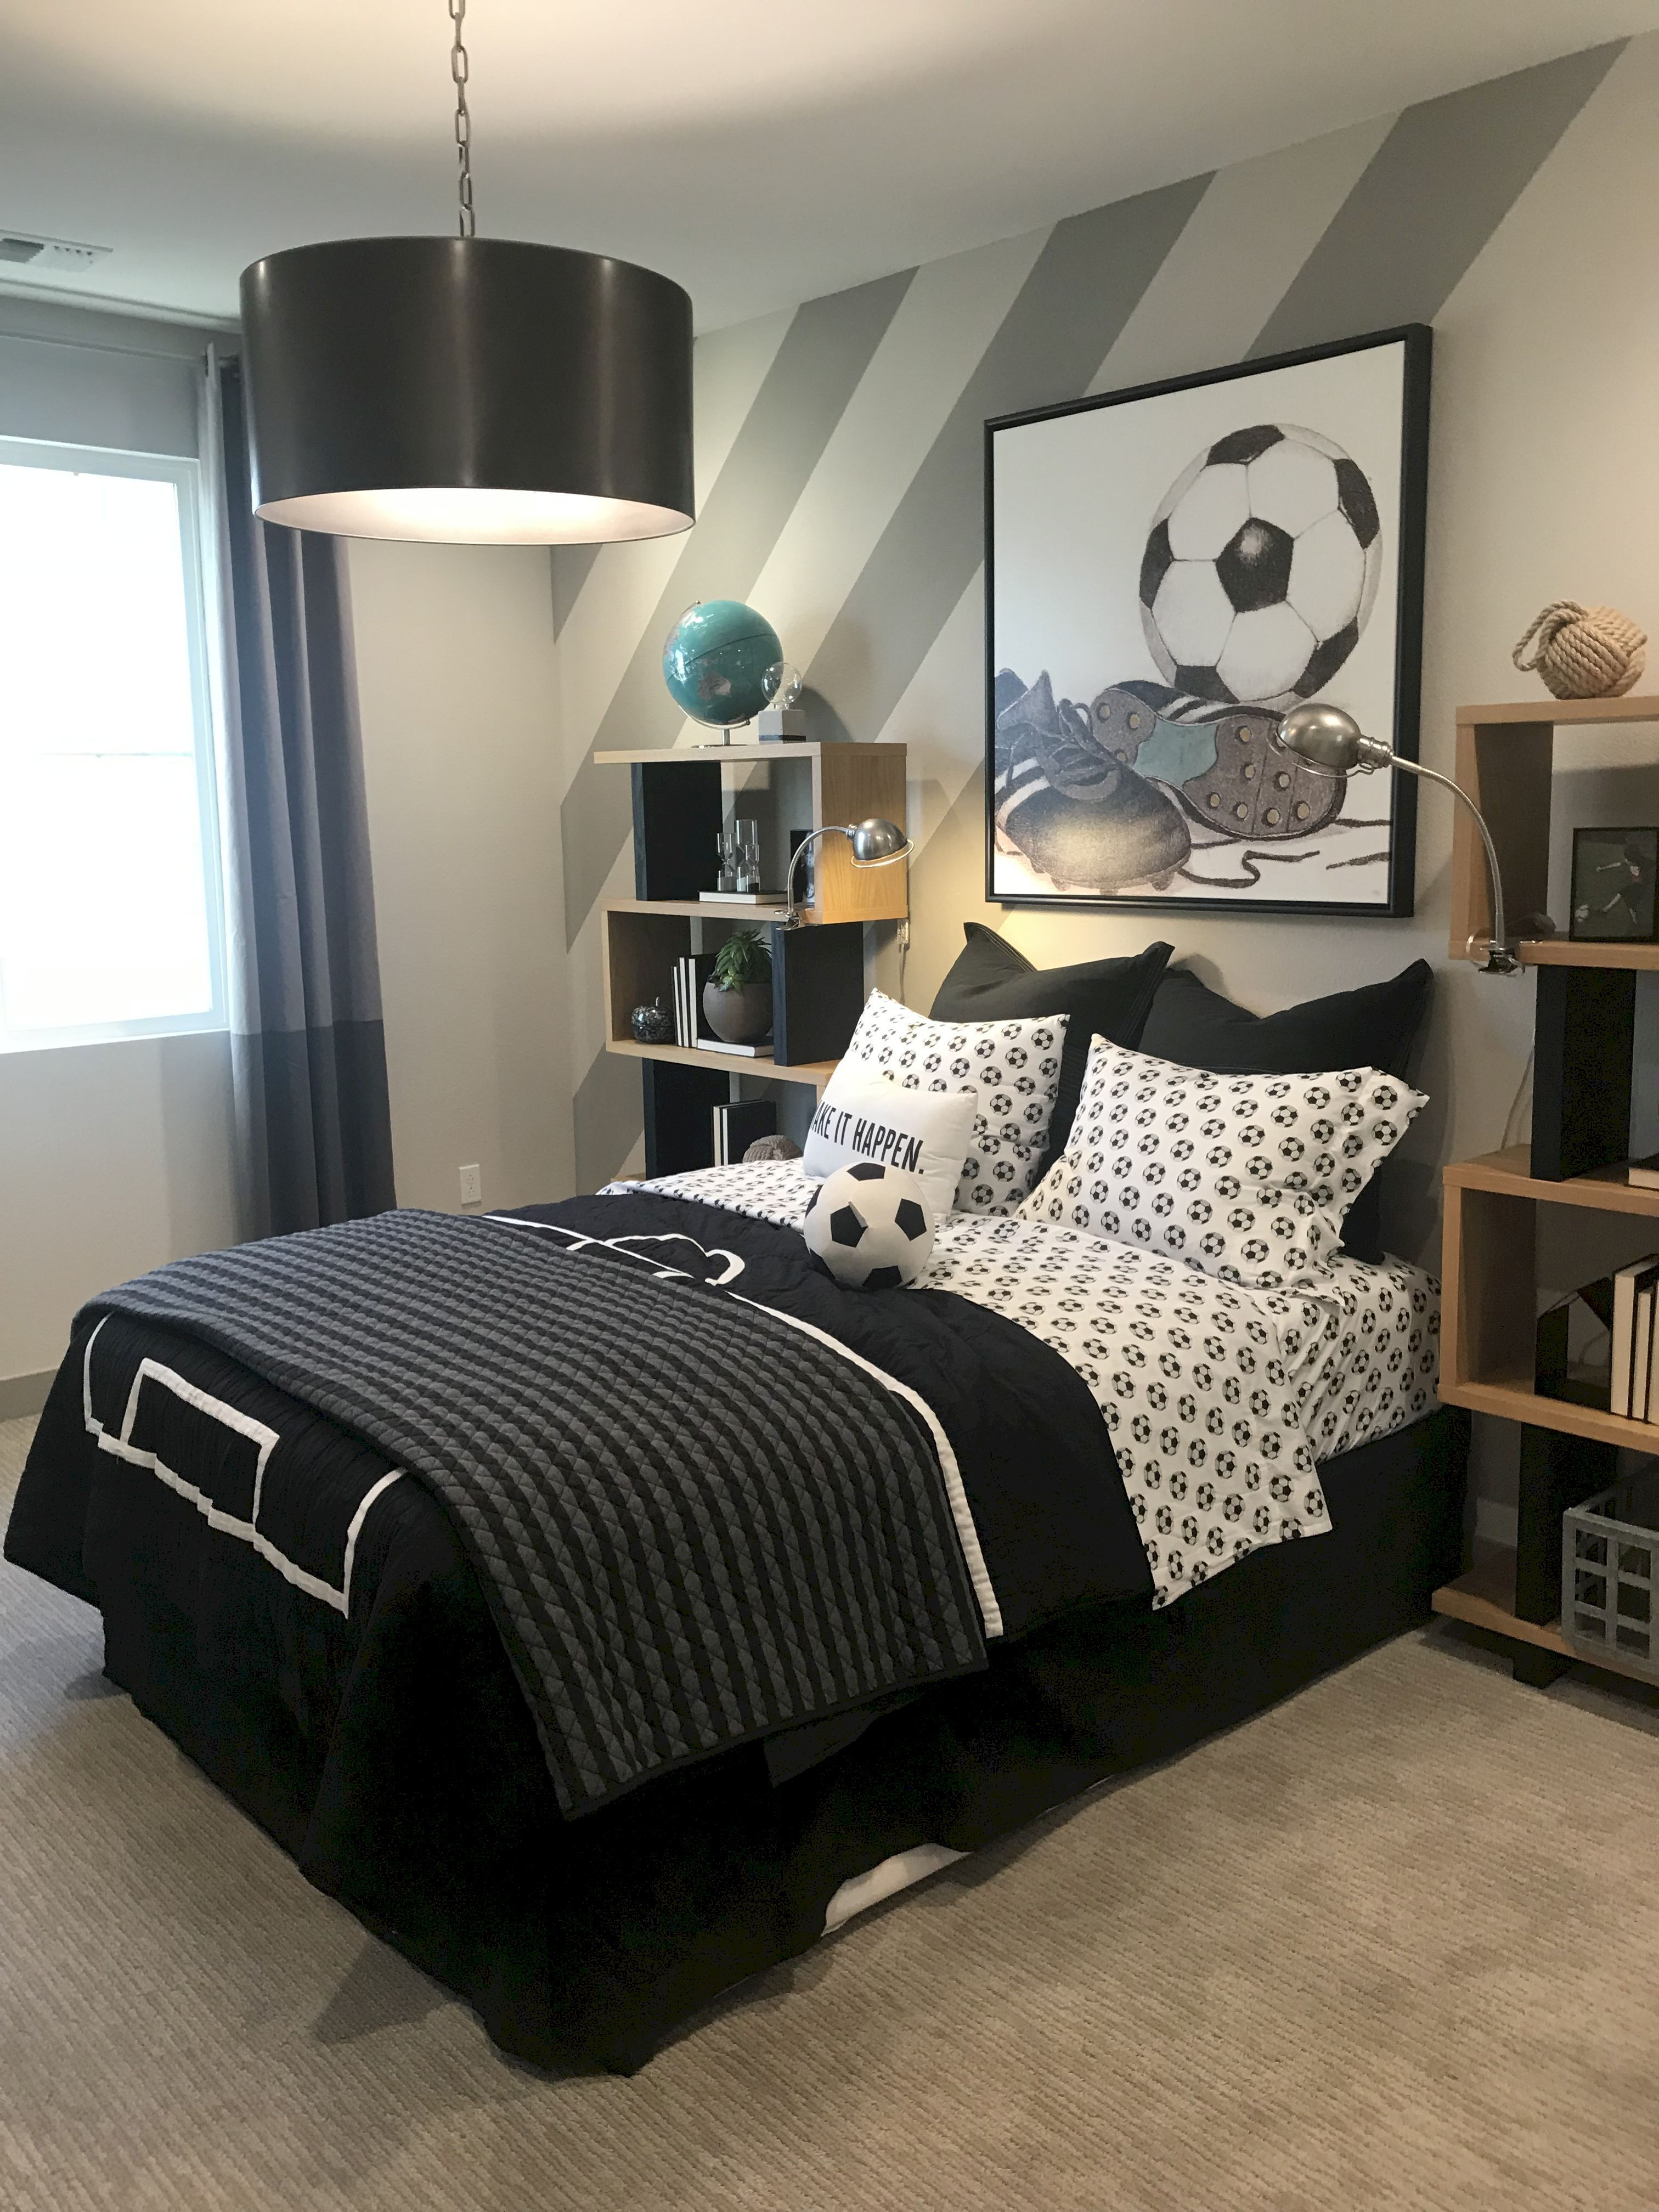 49 Cool Small Bedroom Ideas That Perfect For Small Home Cool